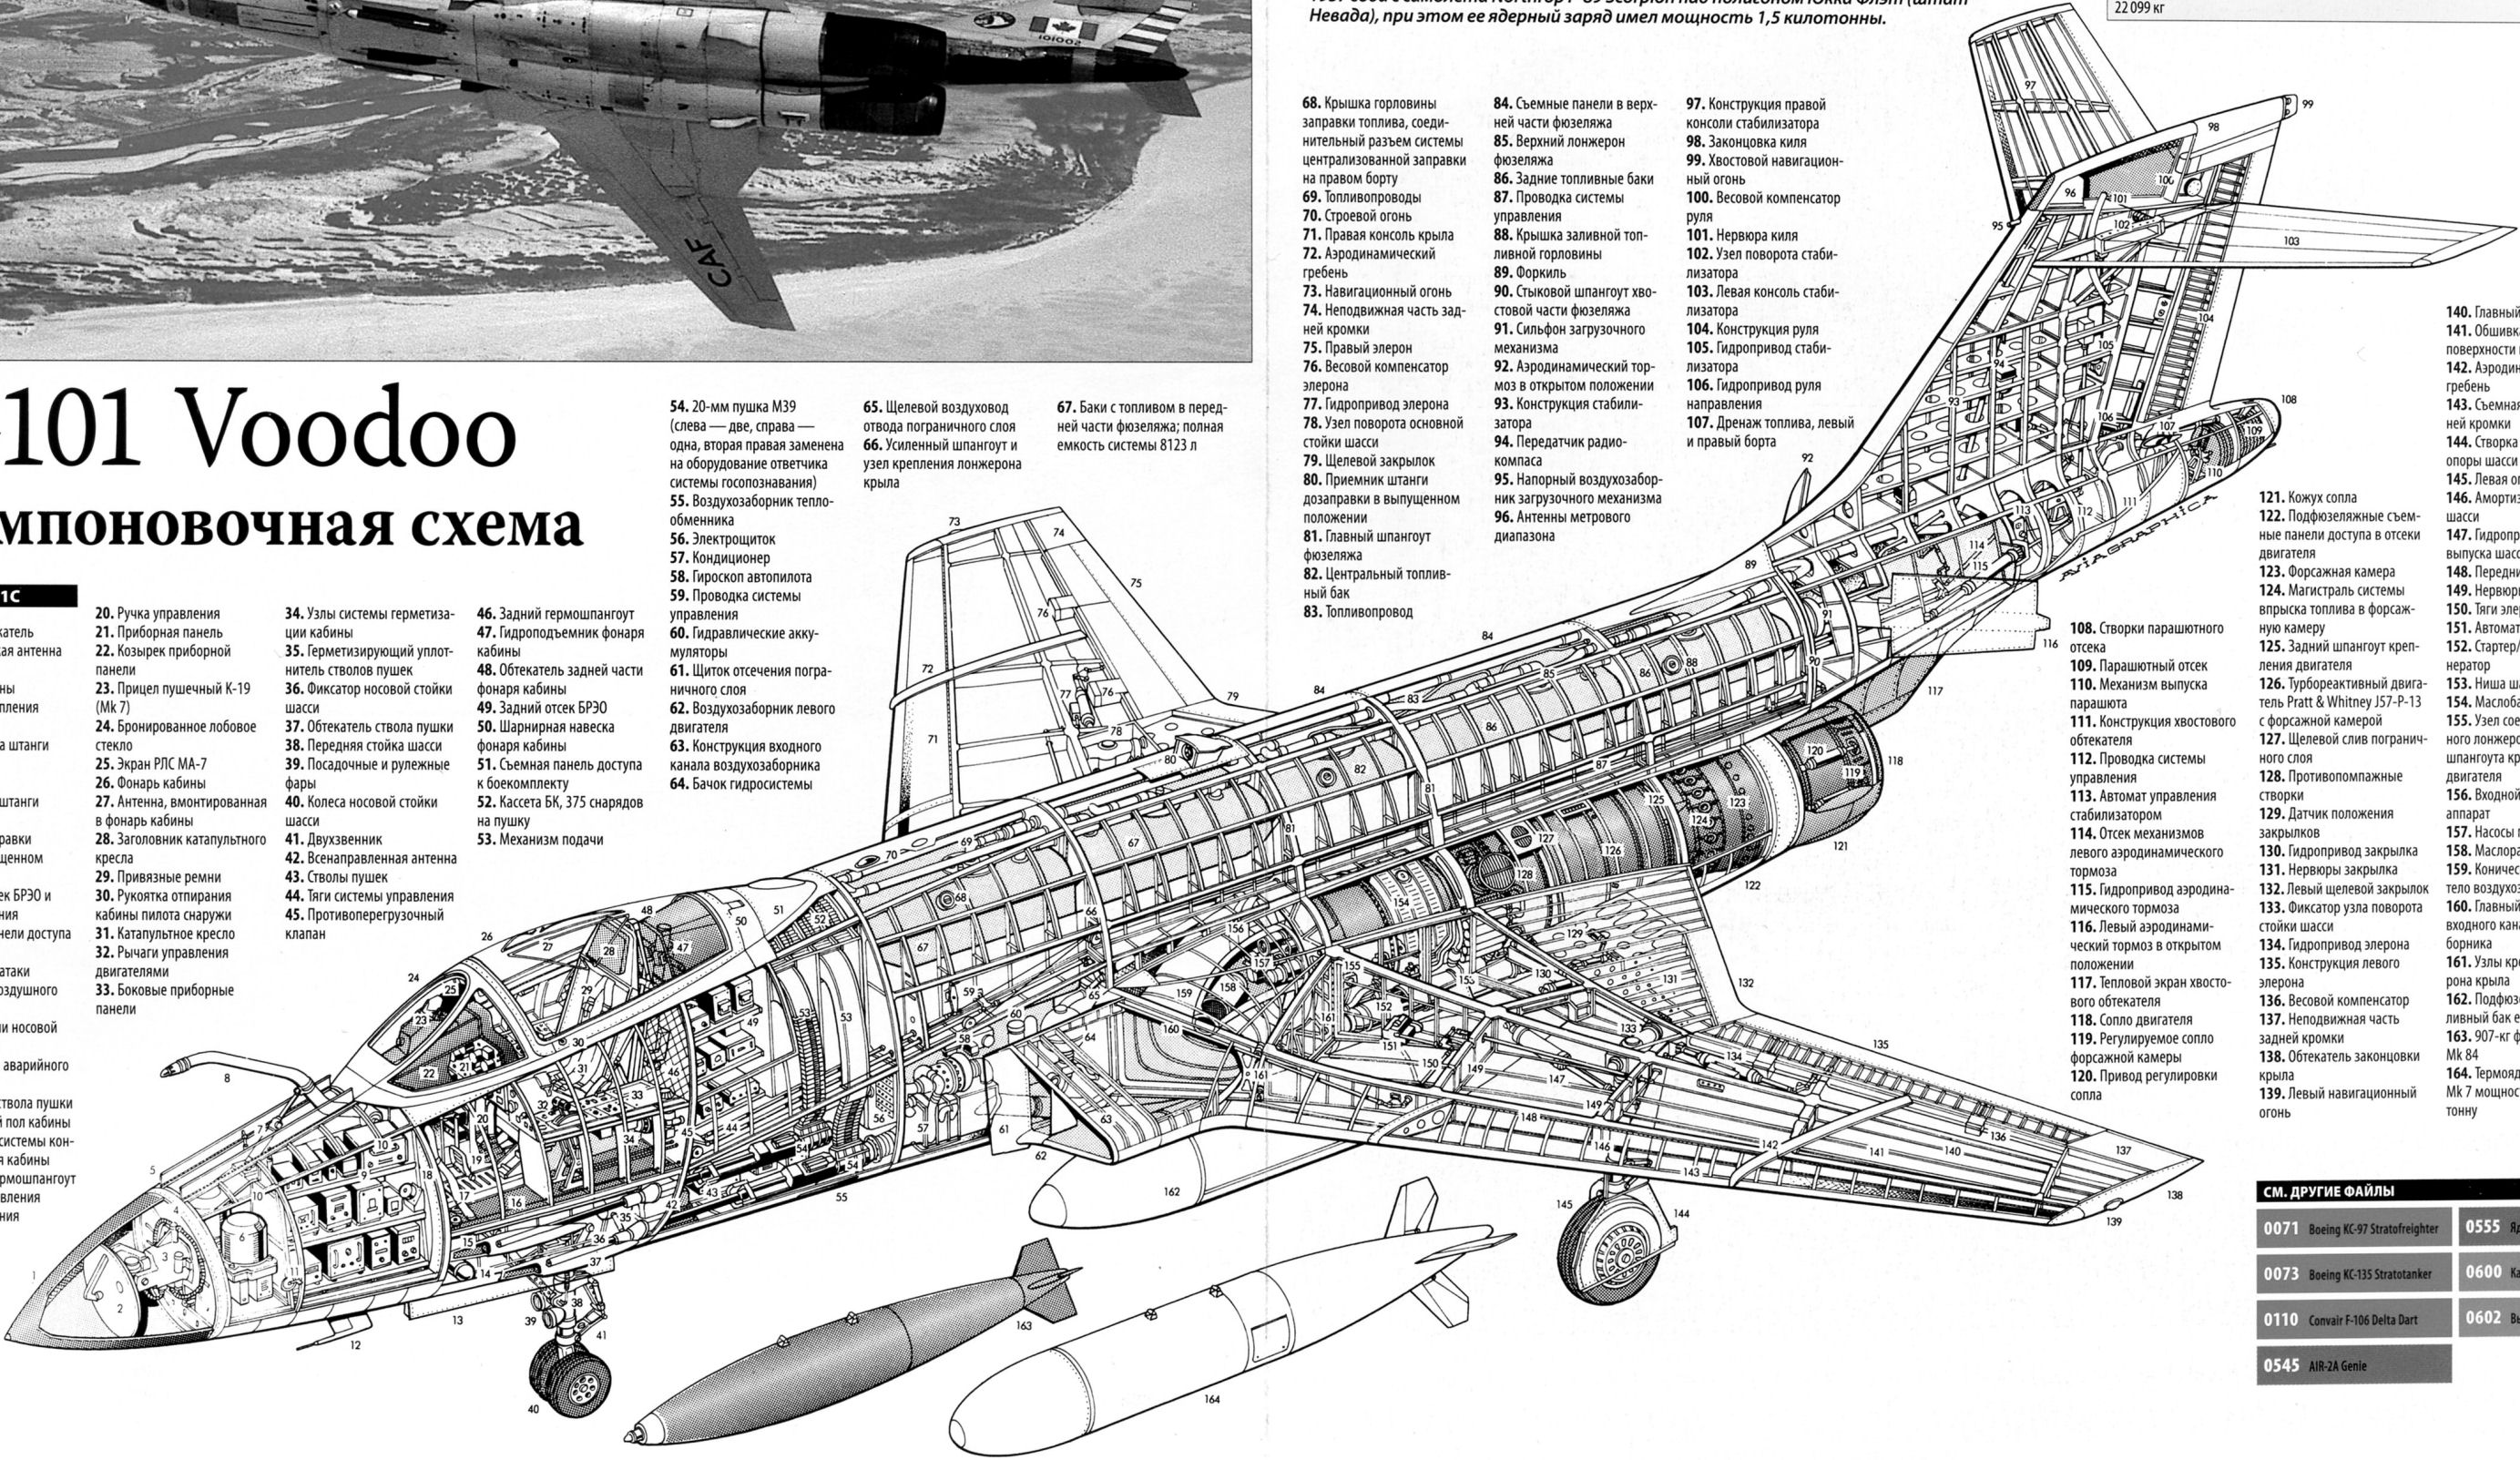 f 101 cutaway engine  f  free engine image for user manual